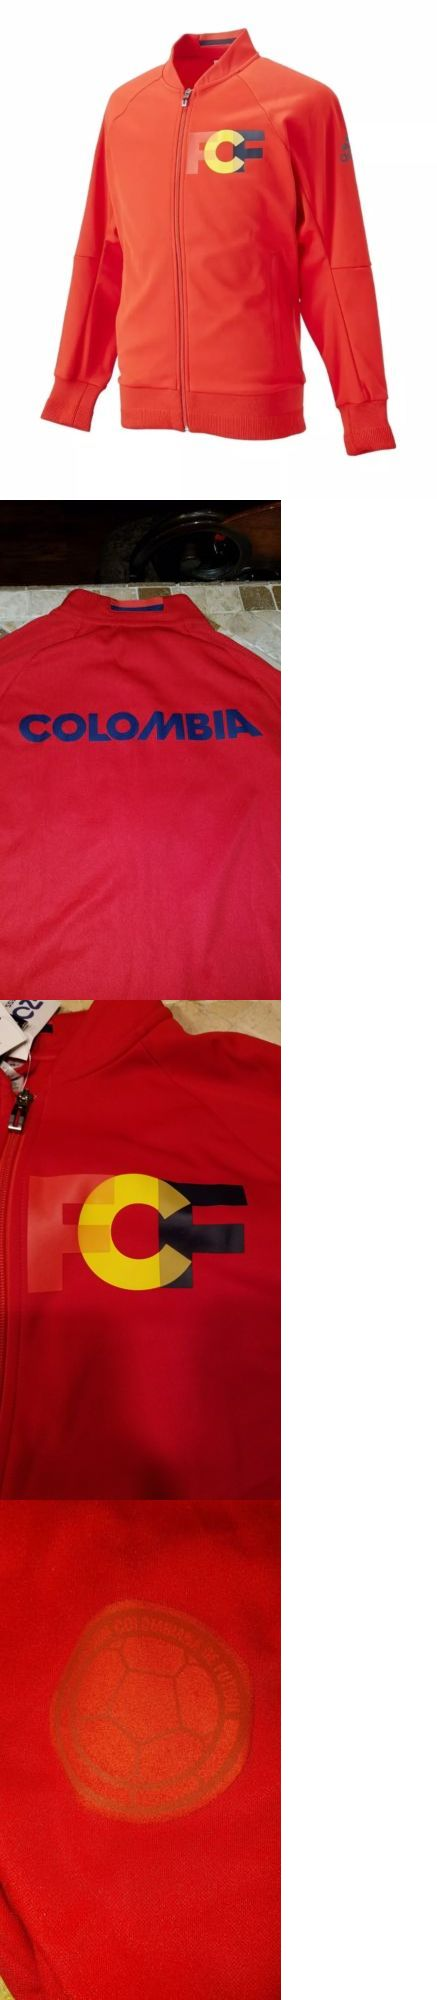 Men 123490: Adidas Colombia 2016 Men S Anthem Jacket Red 1604 Sz M -> BUY IT NOW ONLY: $60 on eBay! http://feedproxy.google.com/fashiongoshoesa